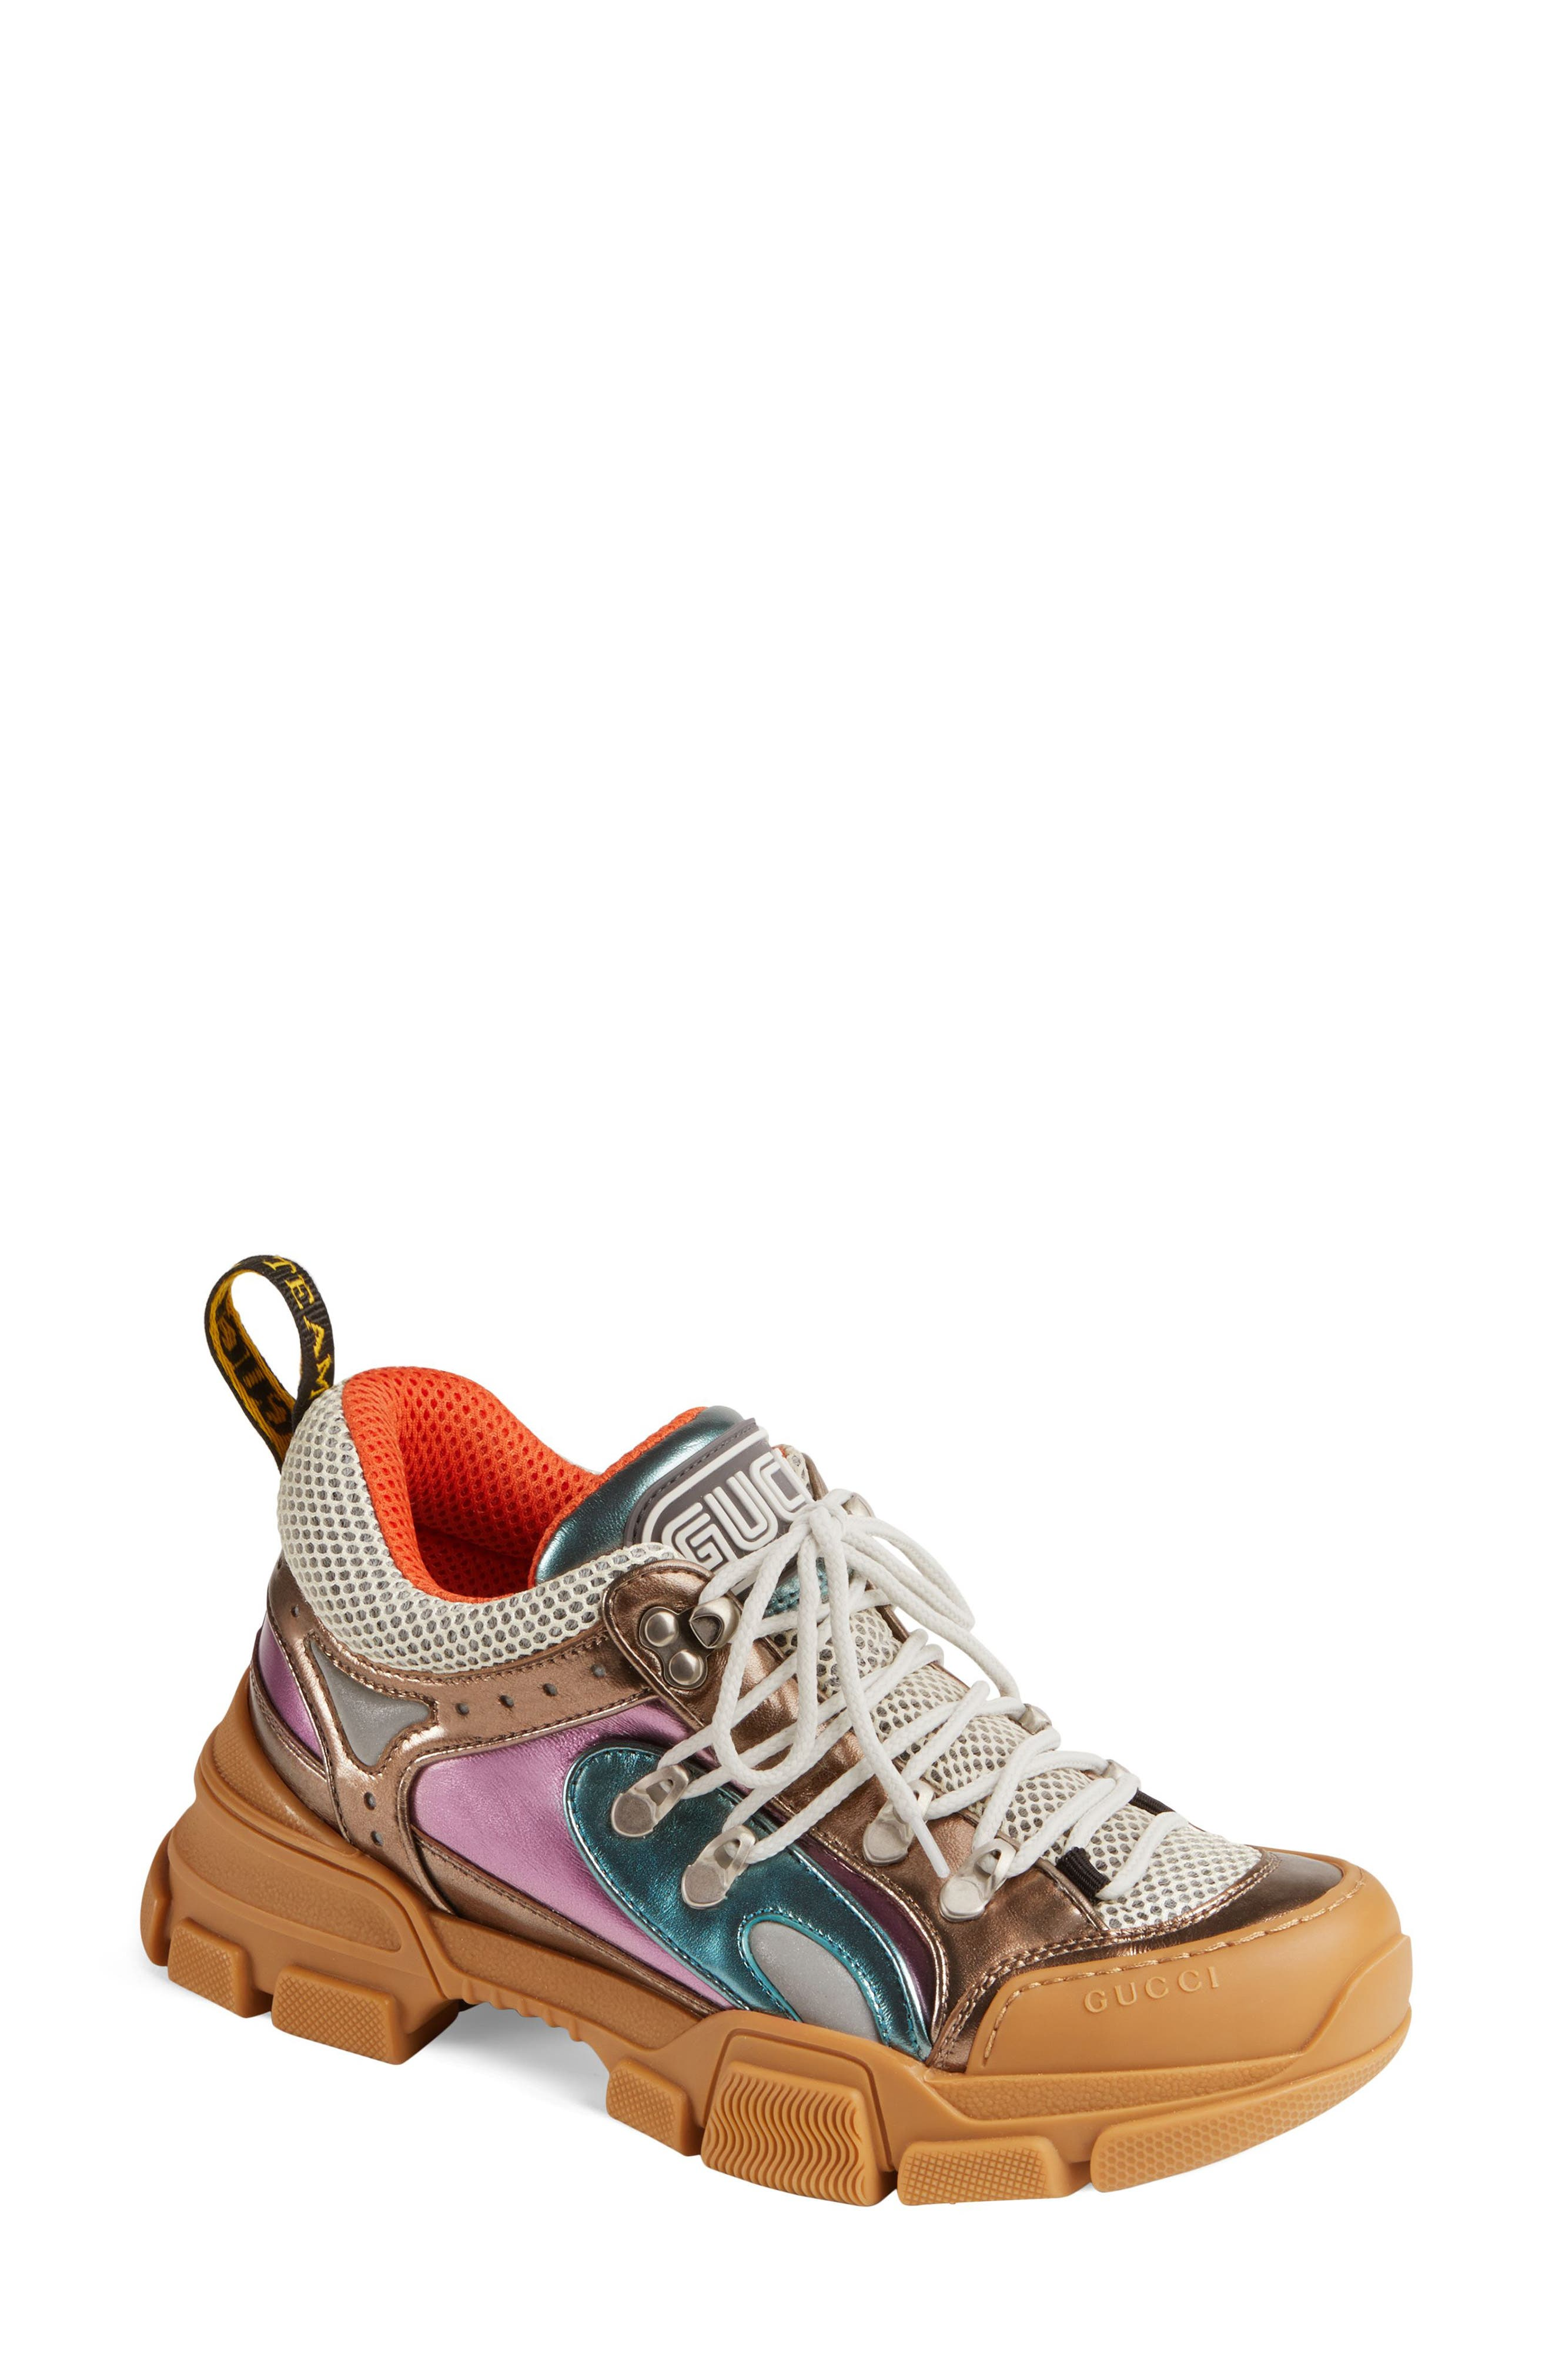 Gucci Flashtrek Lace-Up Sneaker - Brown